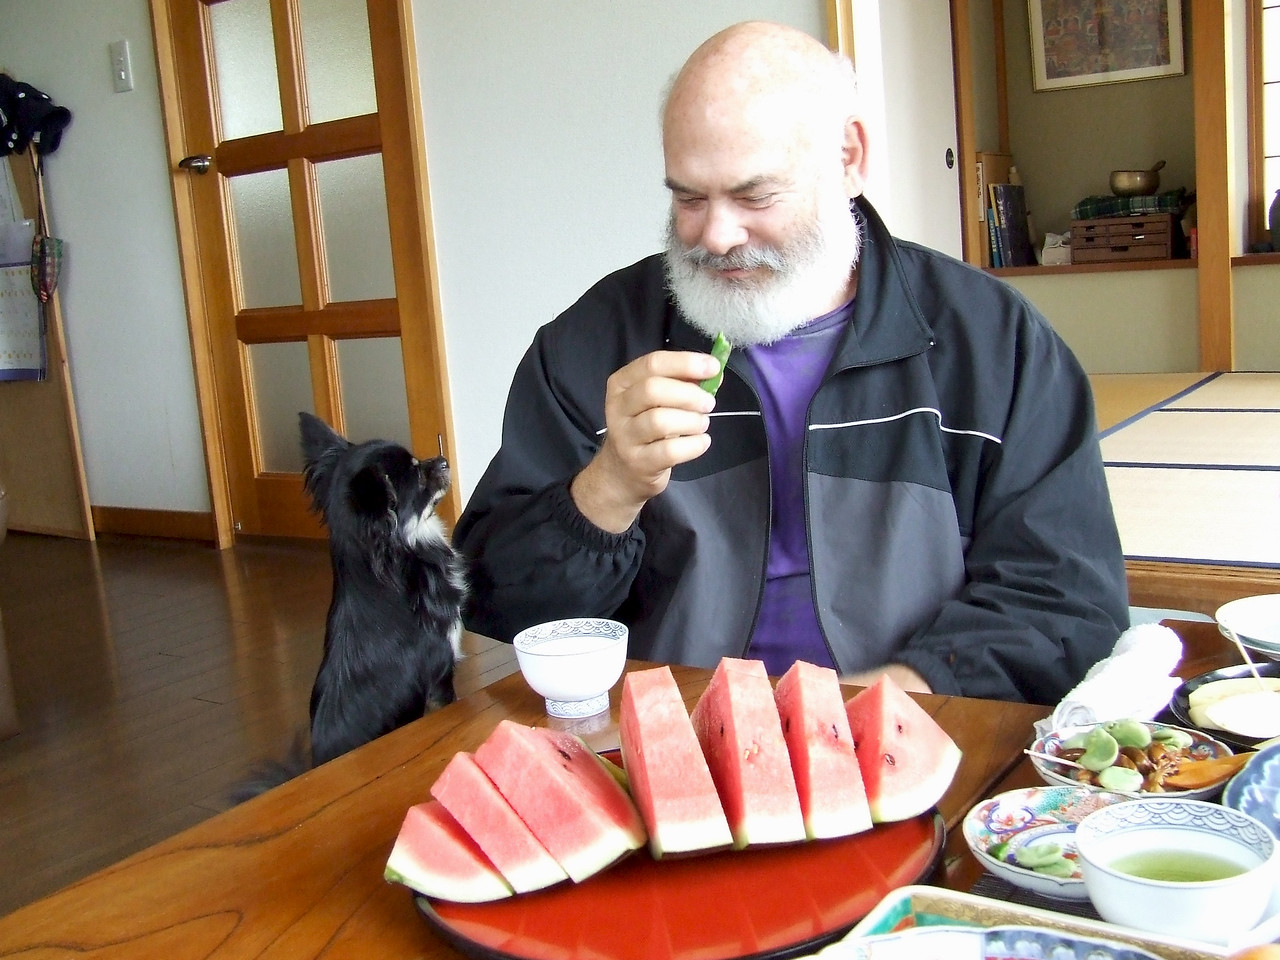 Keiichi and Harumi's dog and I share a love of fine food.